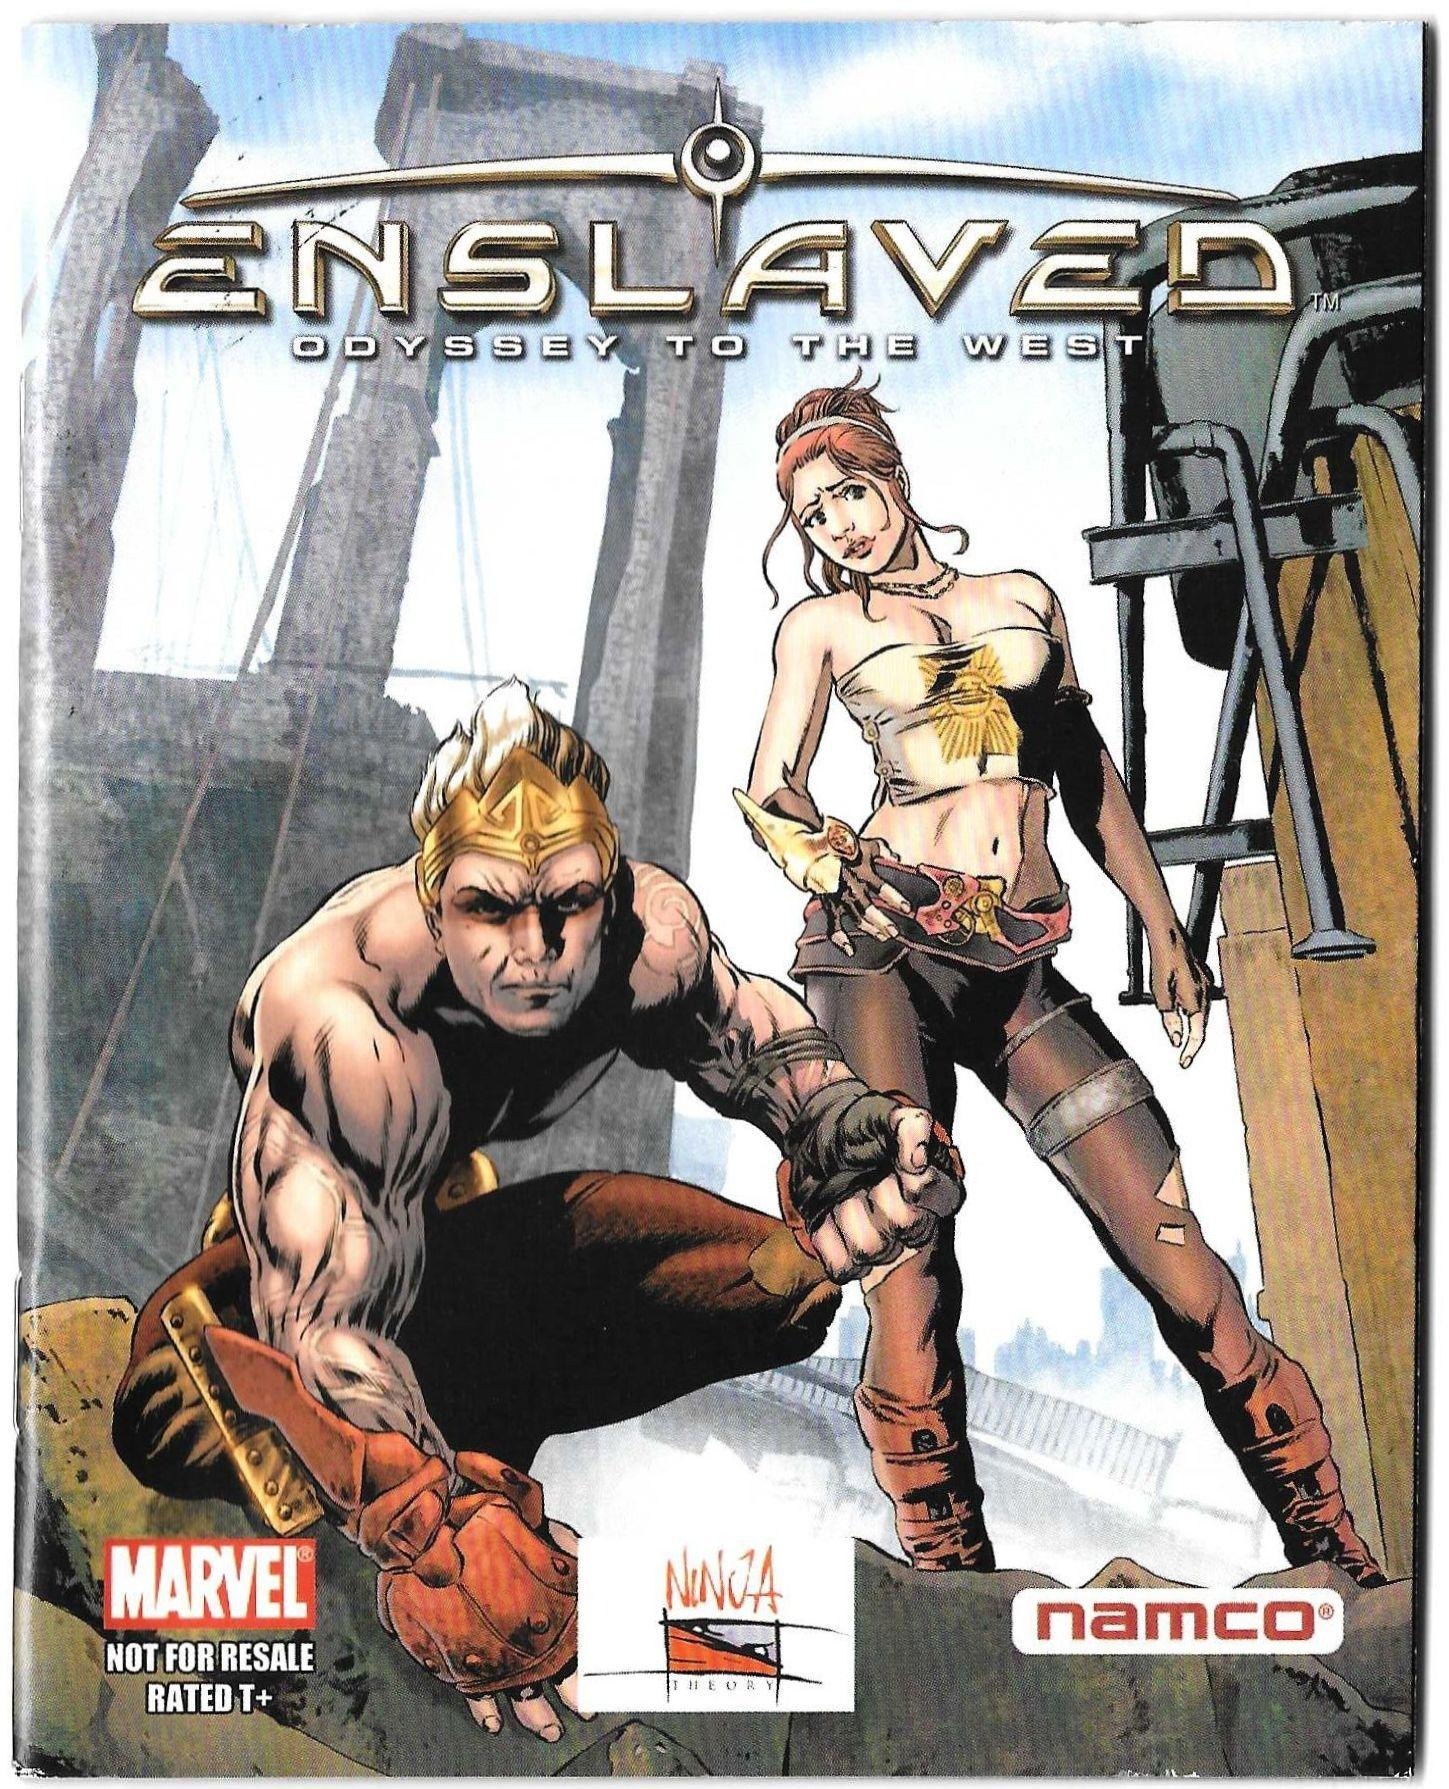 Enslaved Odyssey to the West supplemental comic book